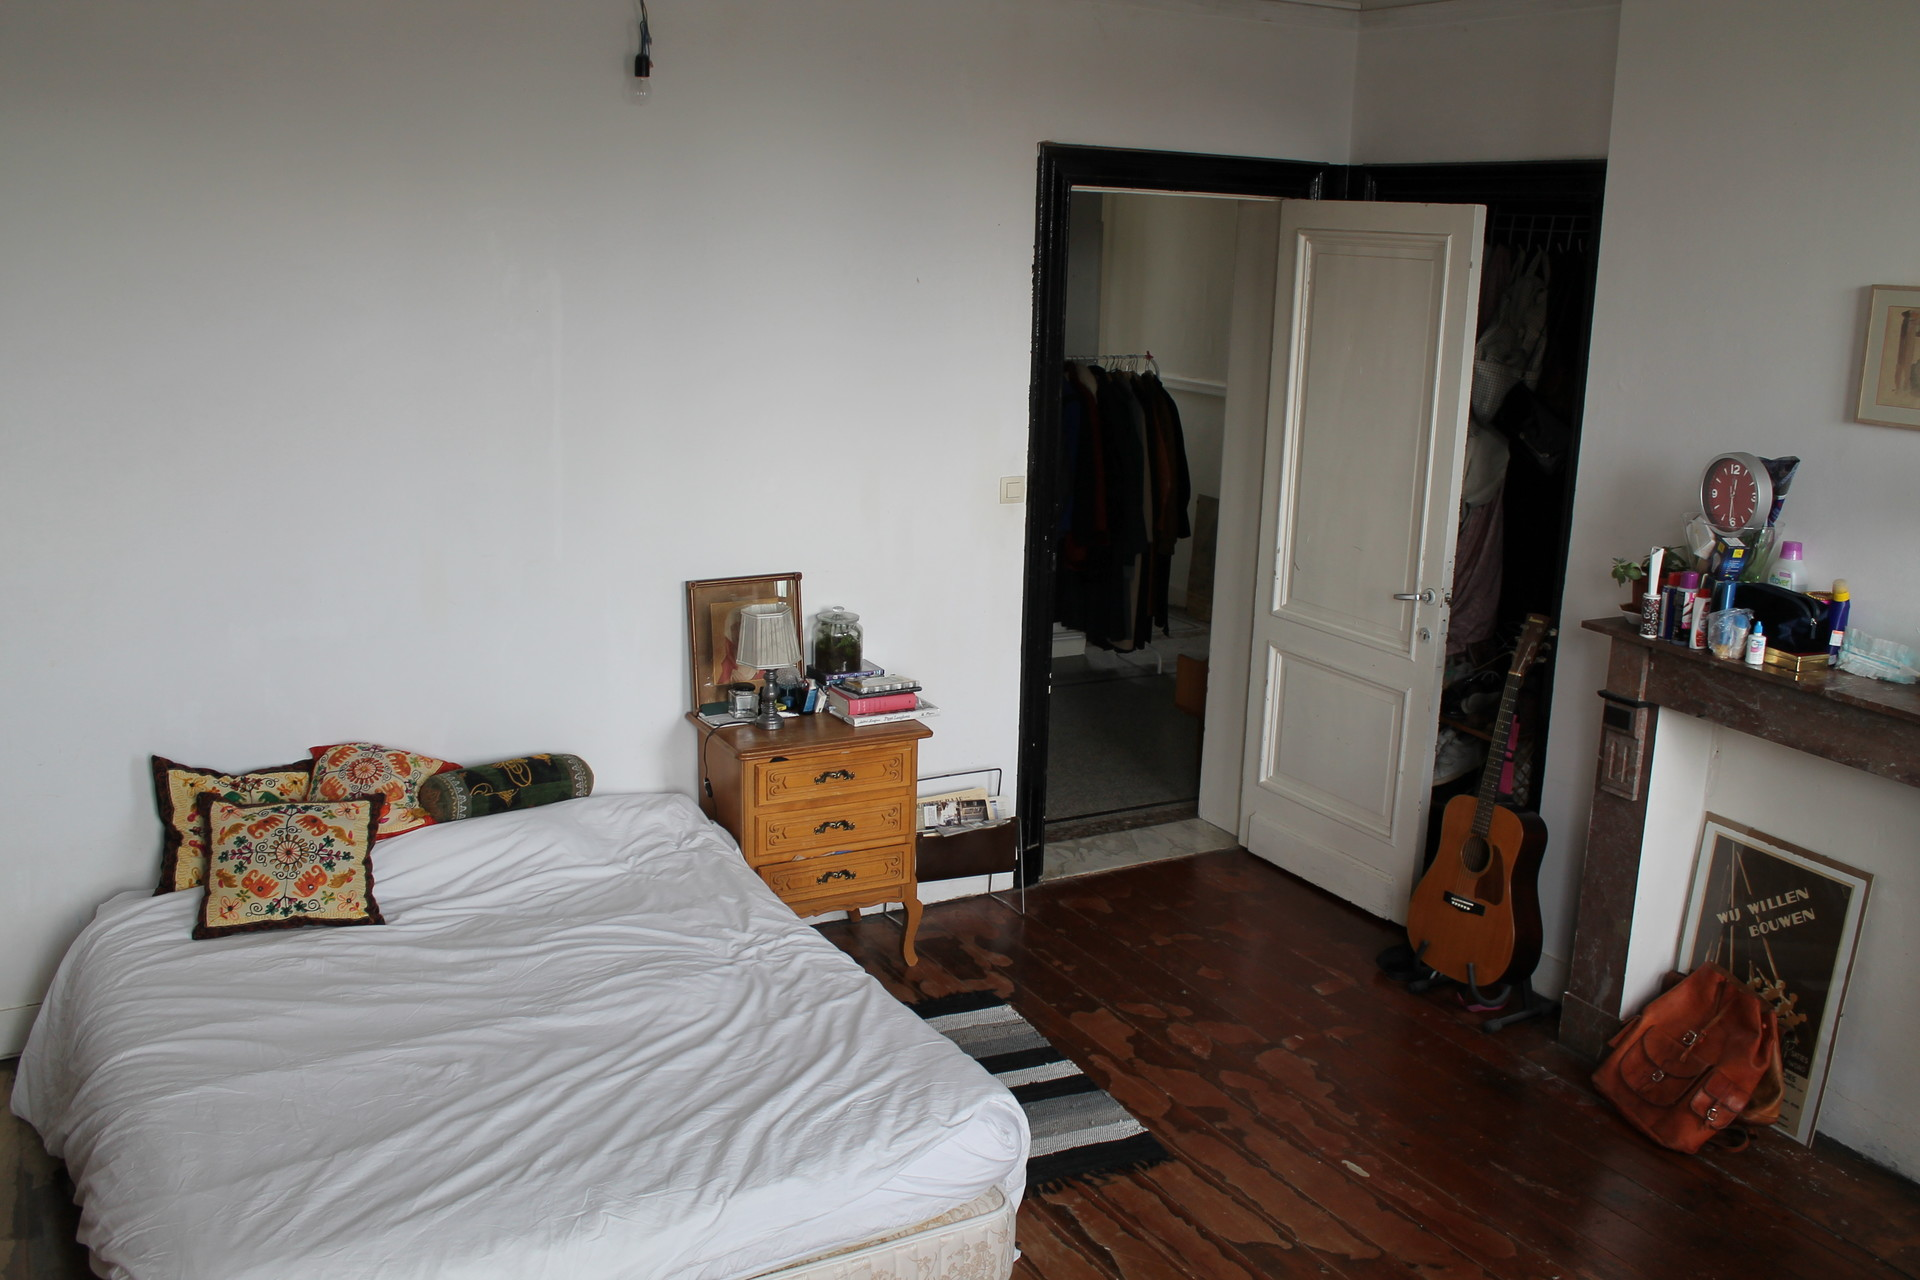 spacious-room-rent-antwerp-central-station-6th-november-2017-12th-january-2018-40b904cb3895d9dd633f95a272bc6570